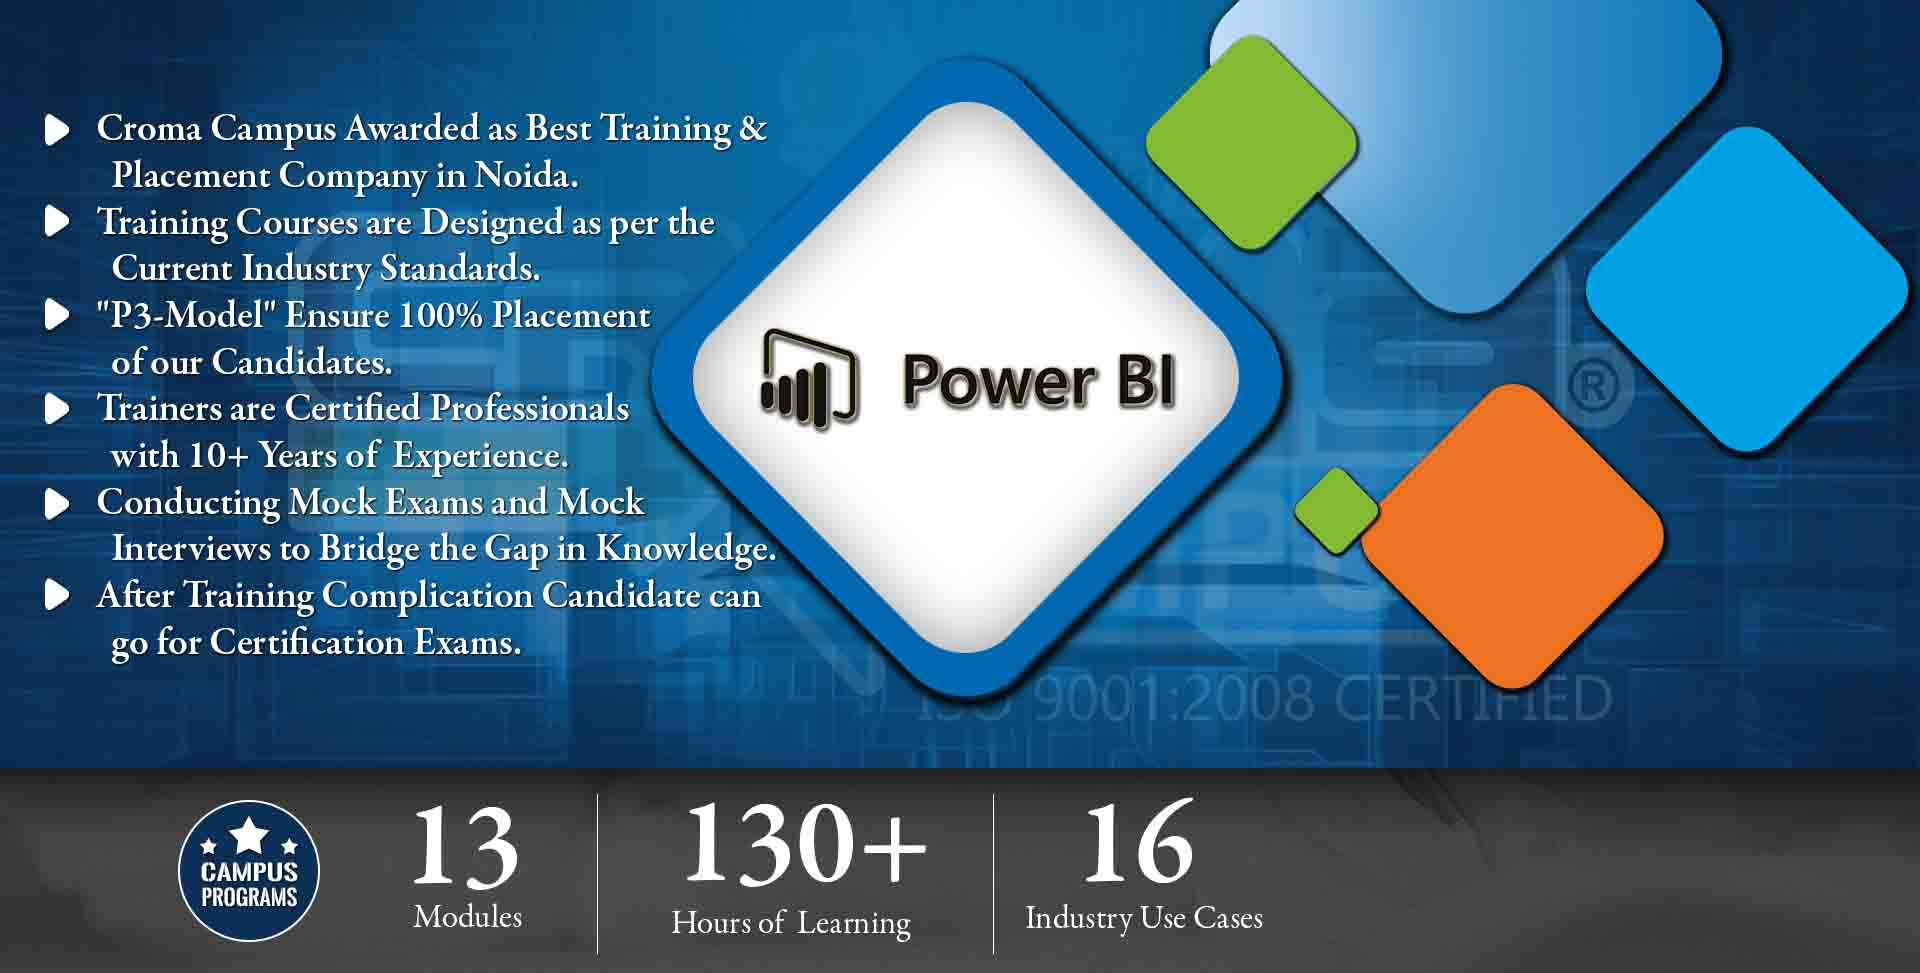 Power BI Training in Noida- Croma Campus